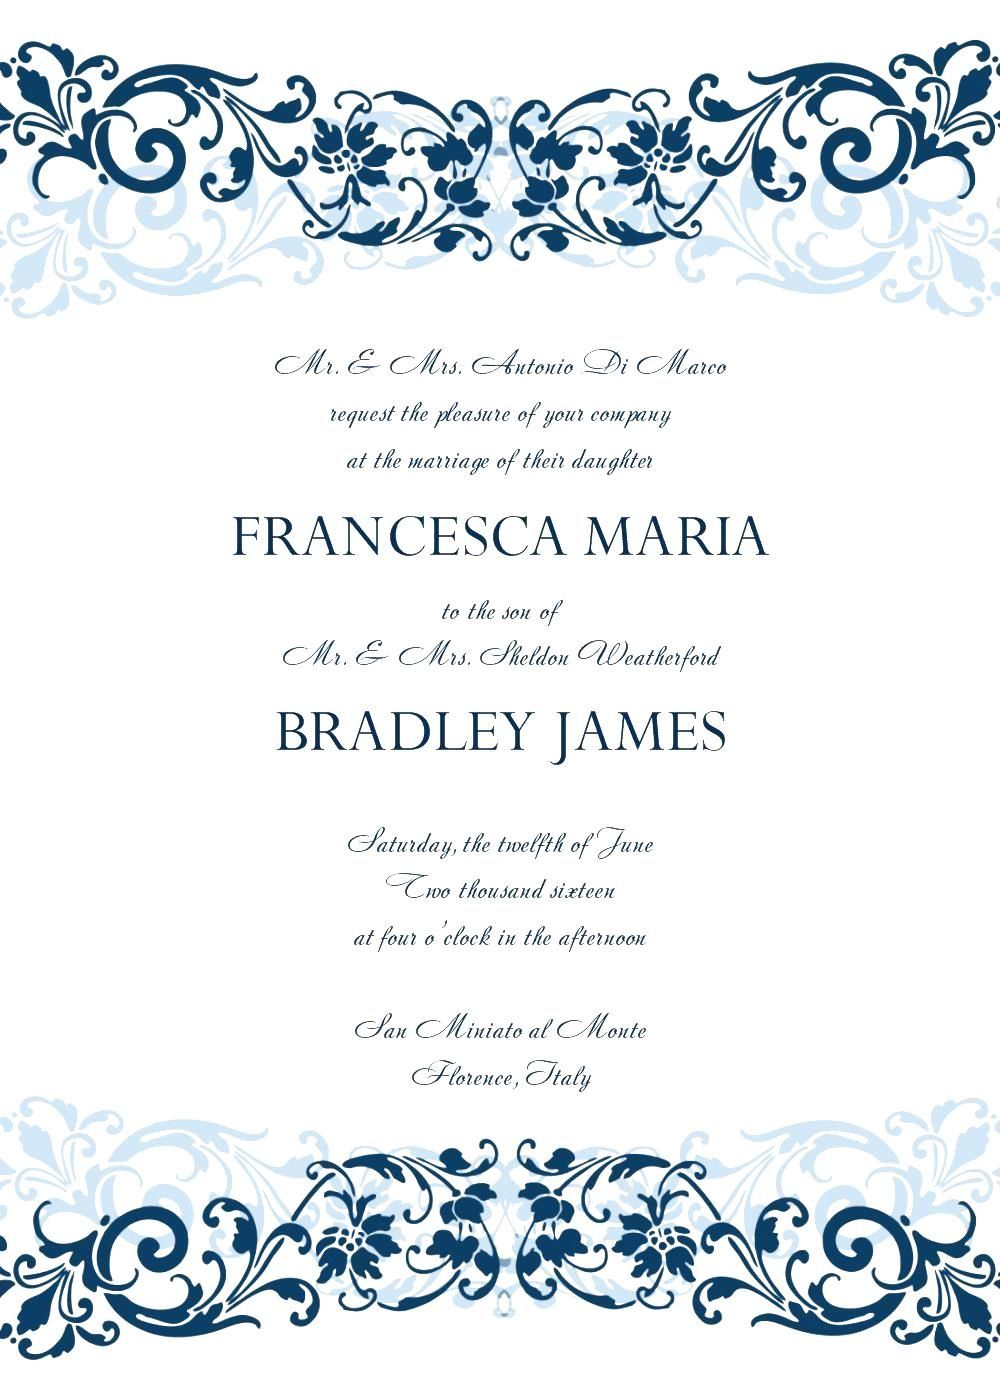 4 New Design and Create A formal Invitat in 4  Free wedding